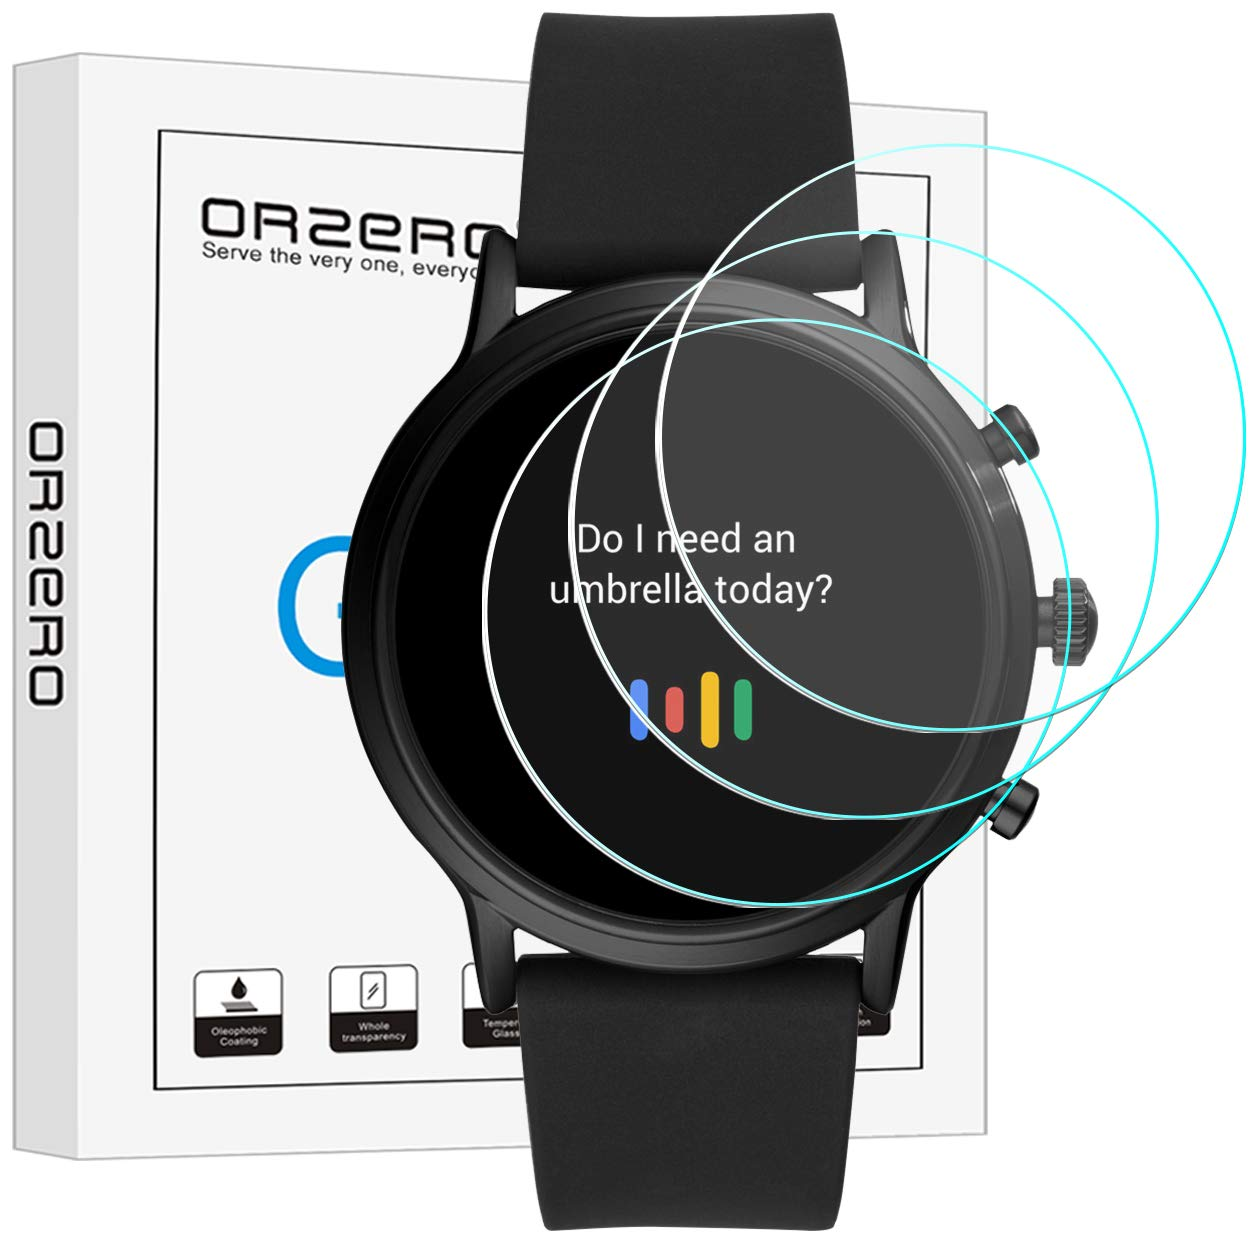 (3 Pack) Orzero Compatible for Fossil Gen 5 Carlyle HR Smartwatch Tempered Glass Screen Protector, 2.5D Arc Edges 9 Hardness HD Anti-Scratch Bubble-Free (Lifetime Replacement)